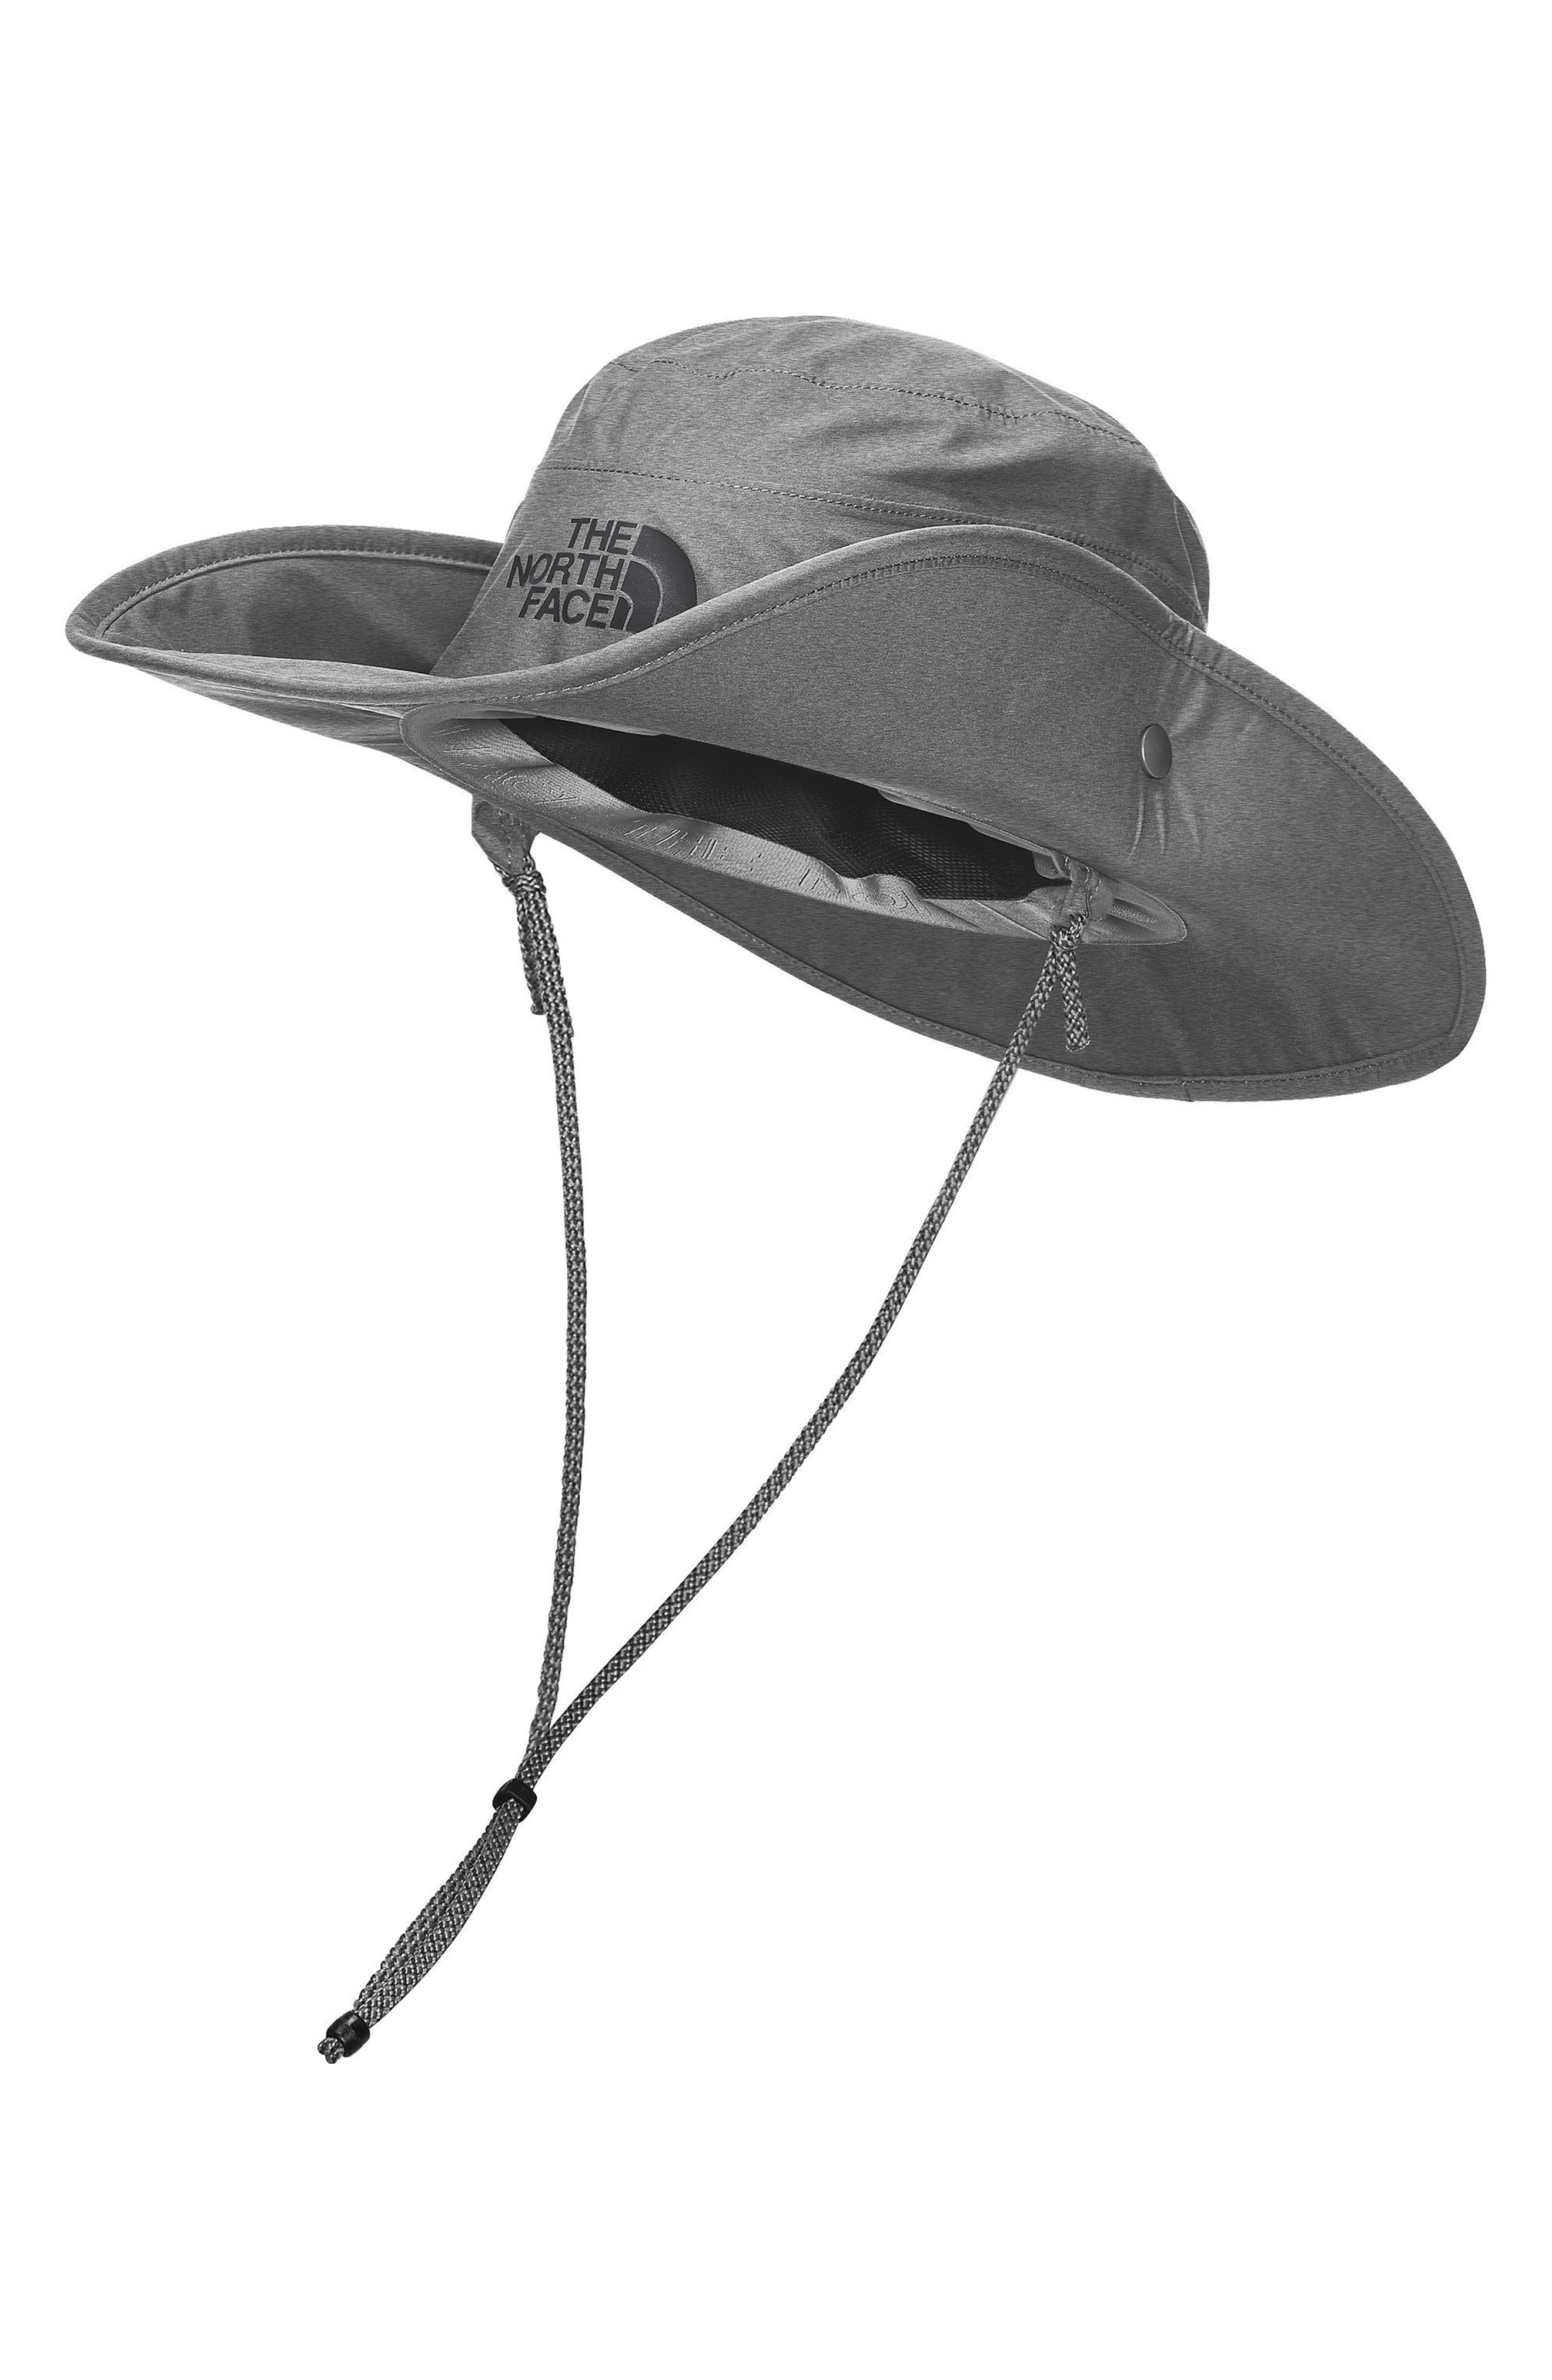 THE NORTH FACE Gore-Tex<sup>®</sup> Hiker Hat, Main, color, 030